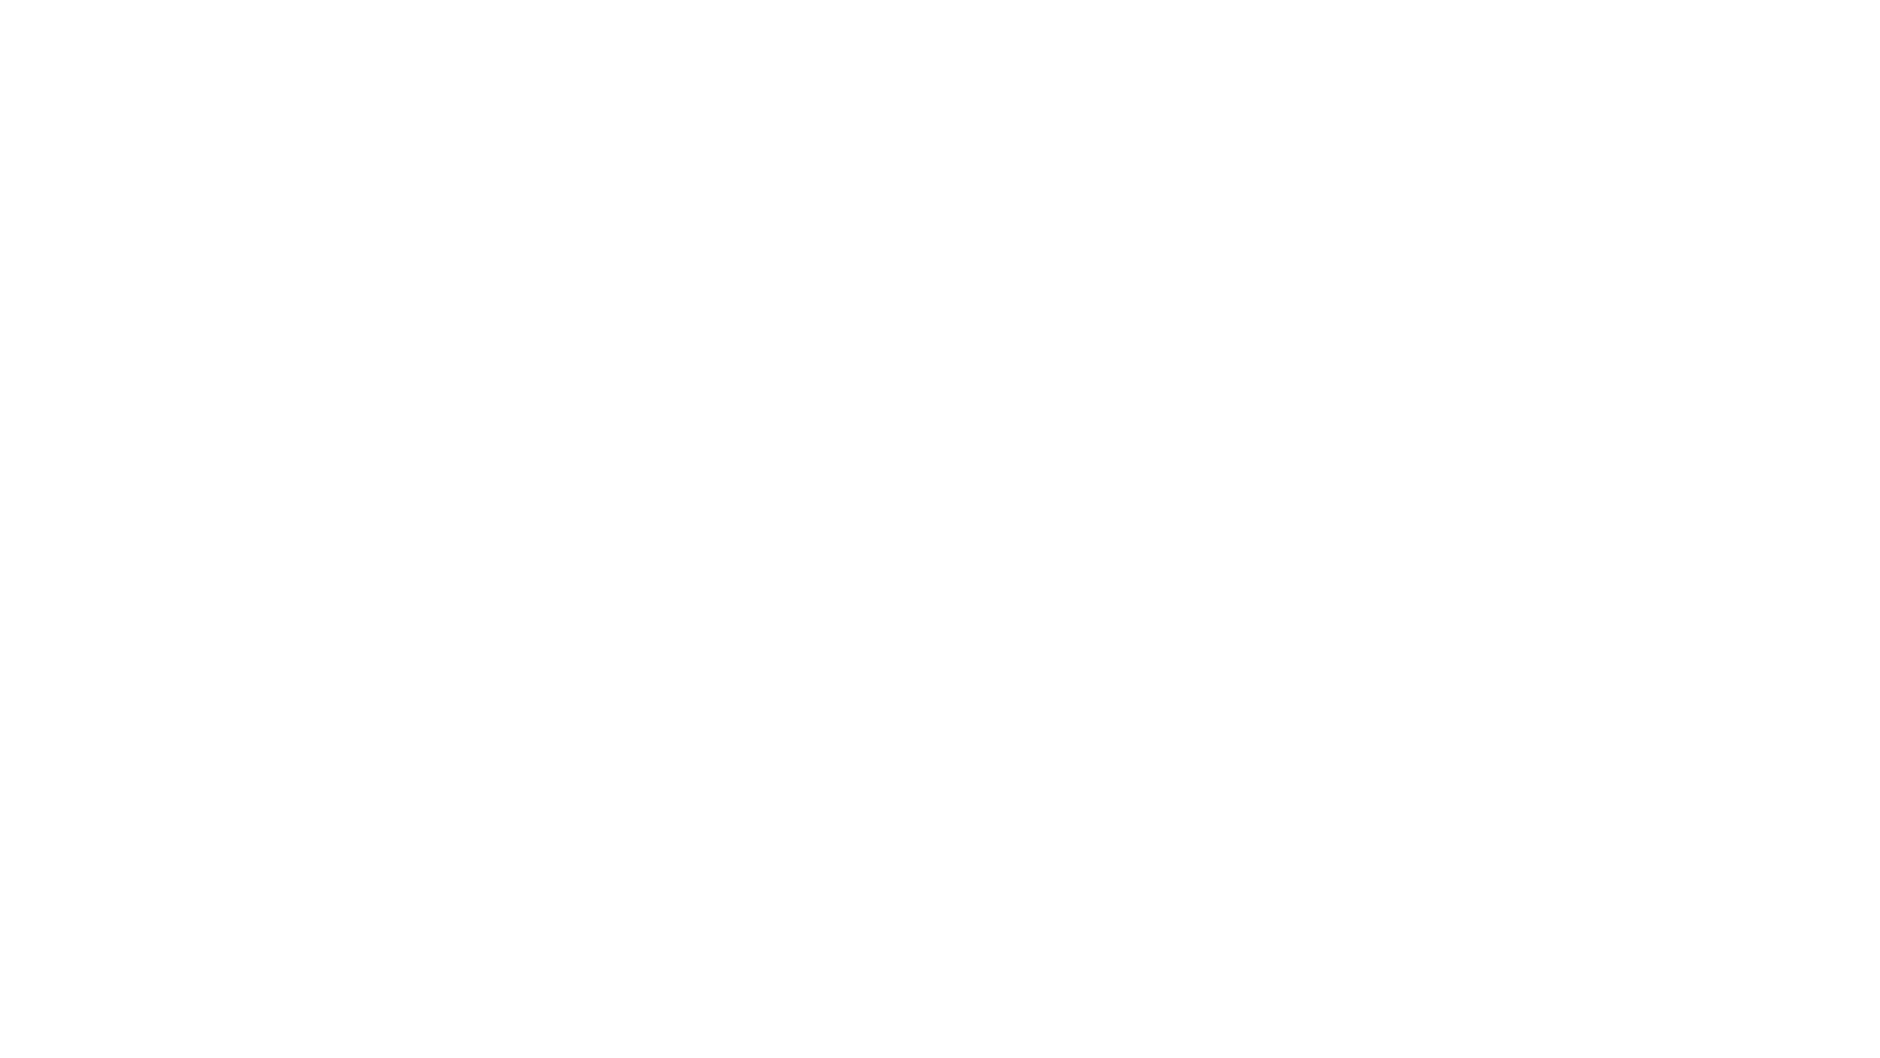 THE SHOP ONLINE #StayCloseInMind